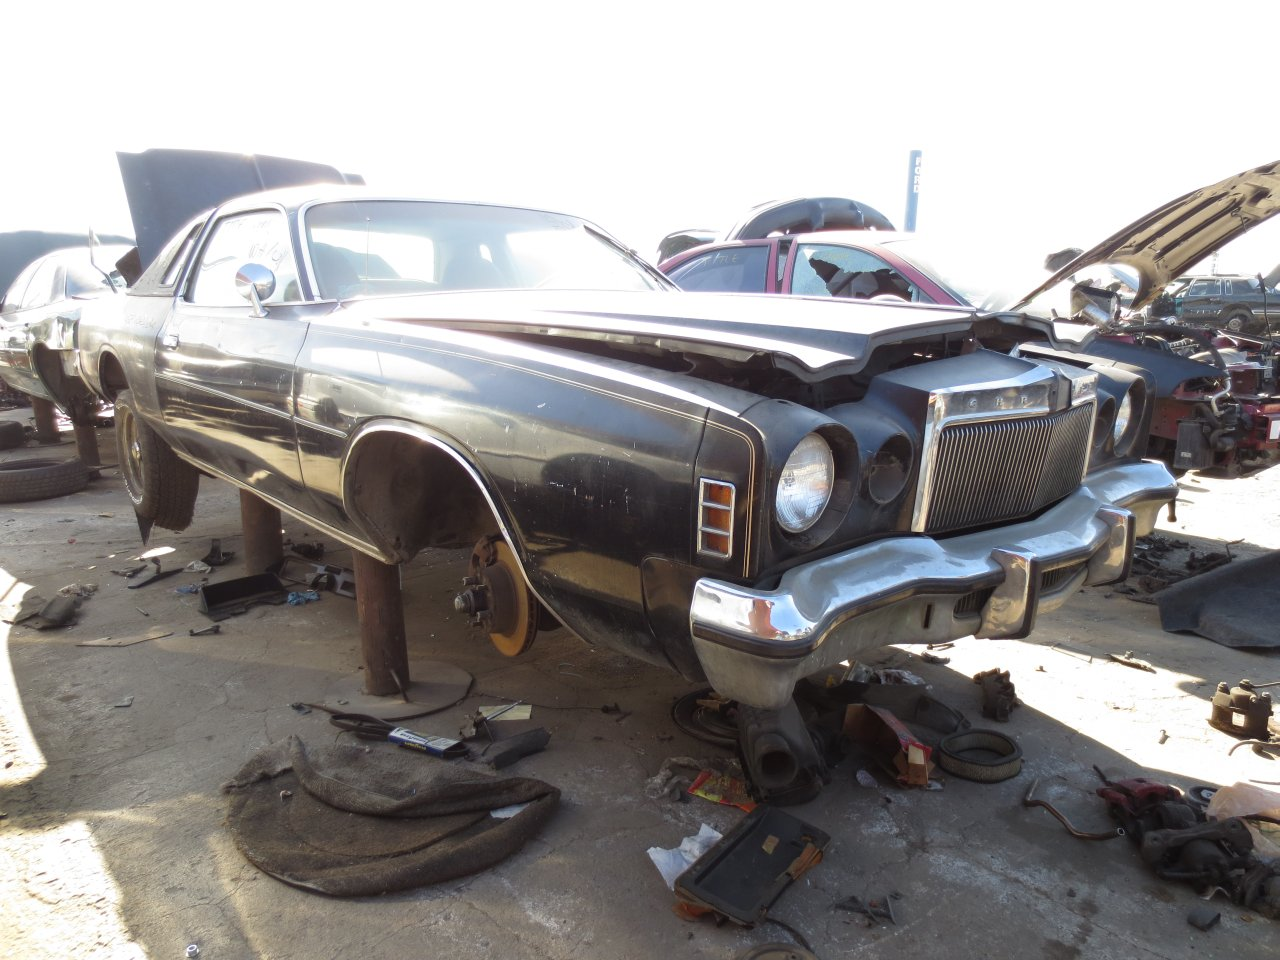 Junkyard Find: 1976 Chrysler Cordoba - The Truth About Cars